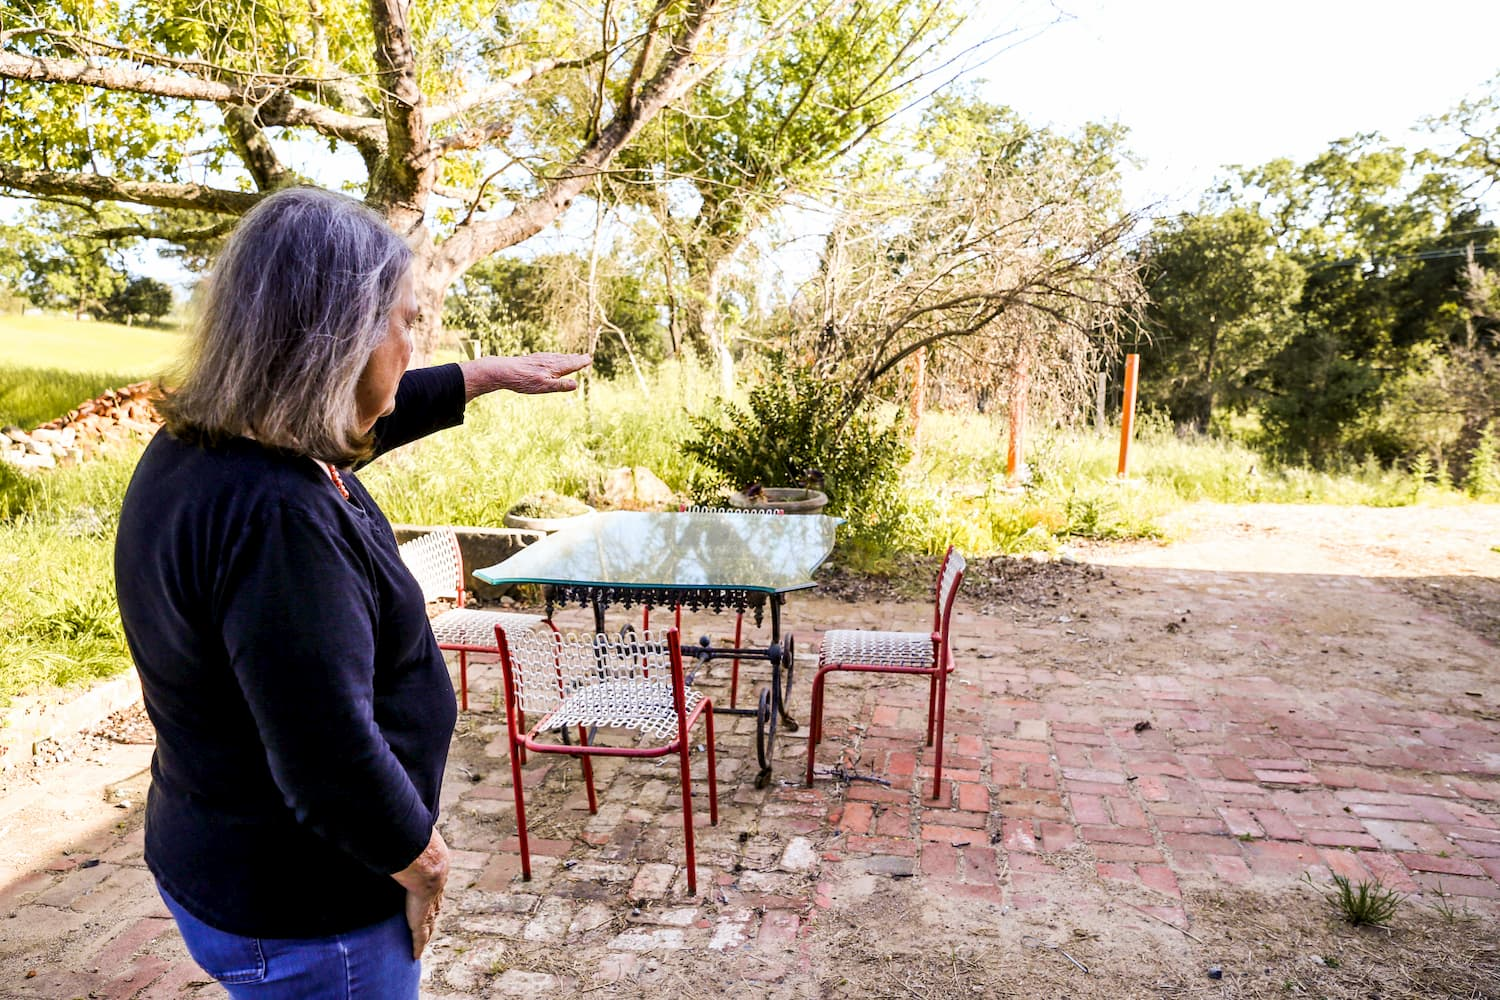 Older woman standing on brick patio surveying backyard